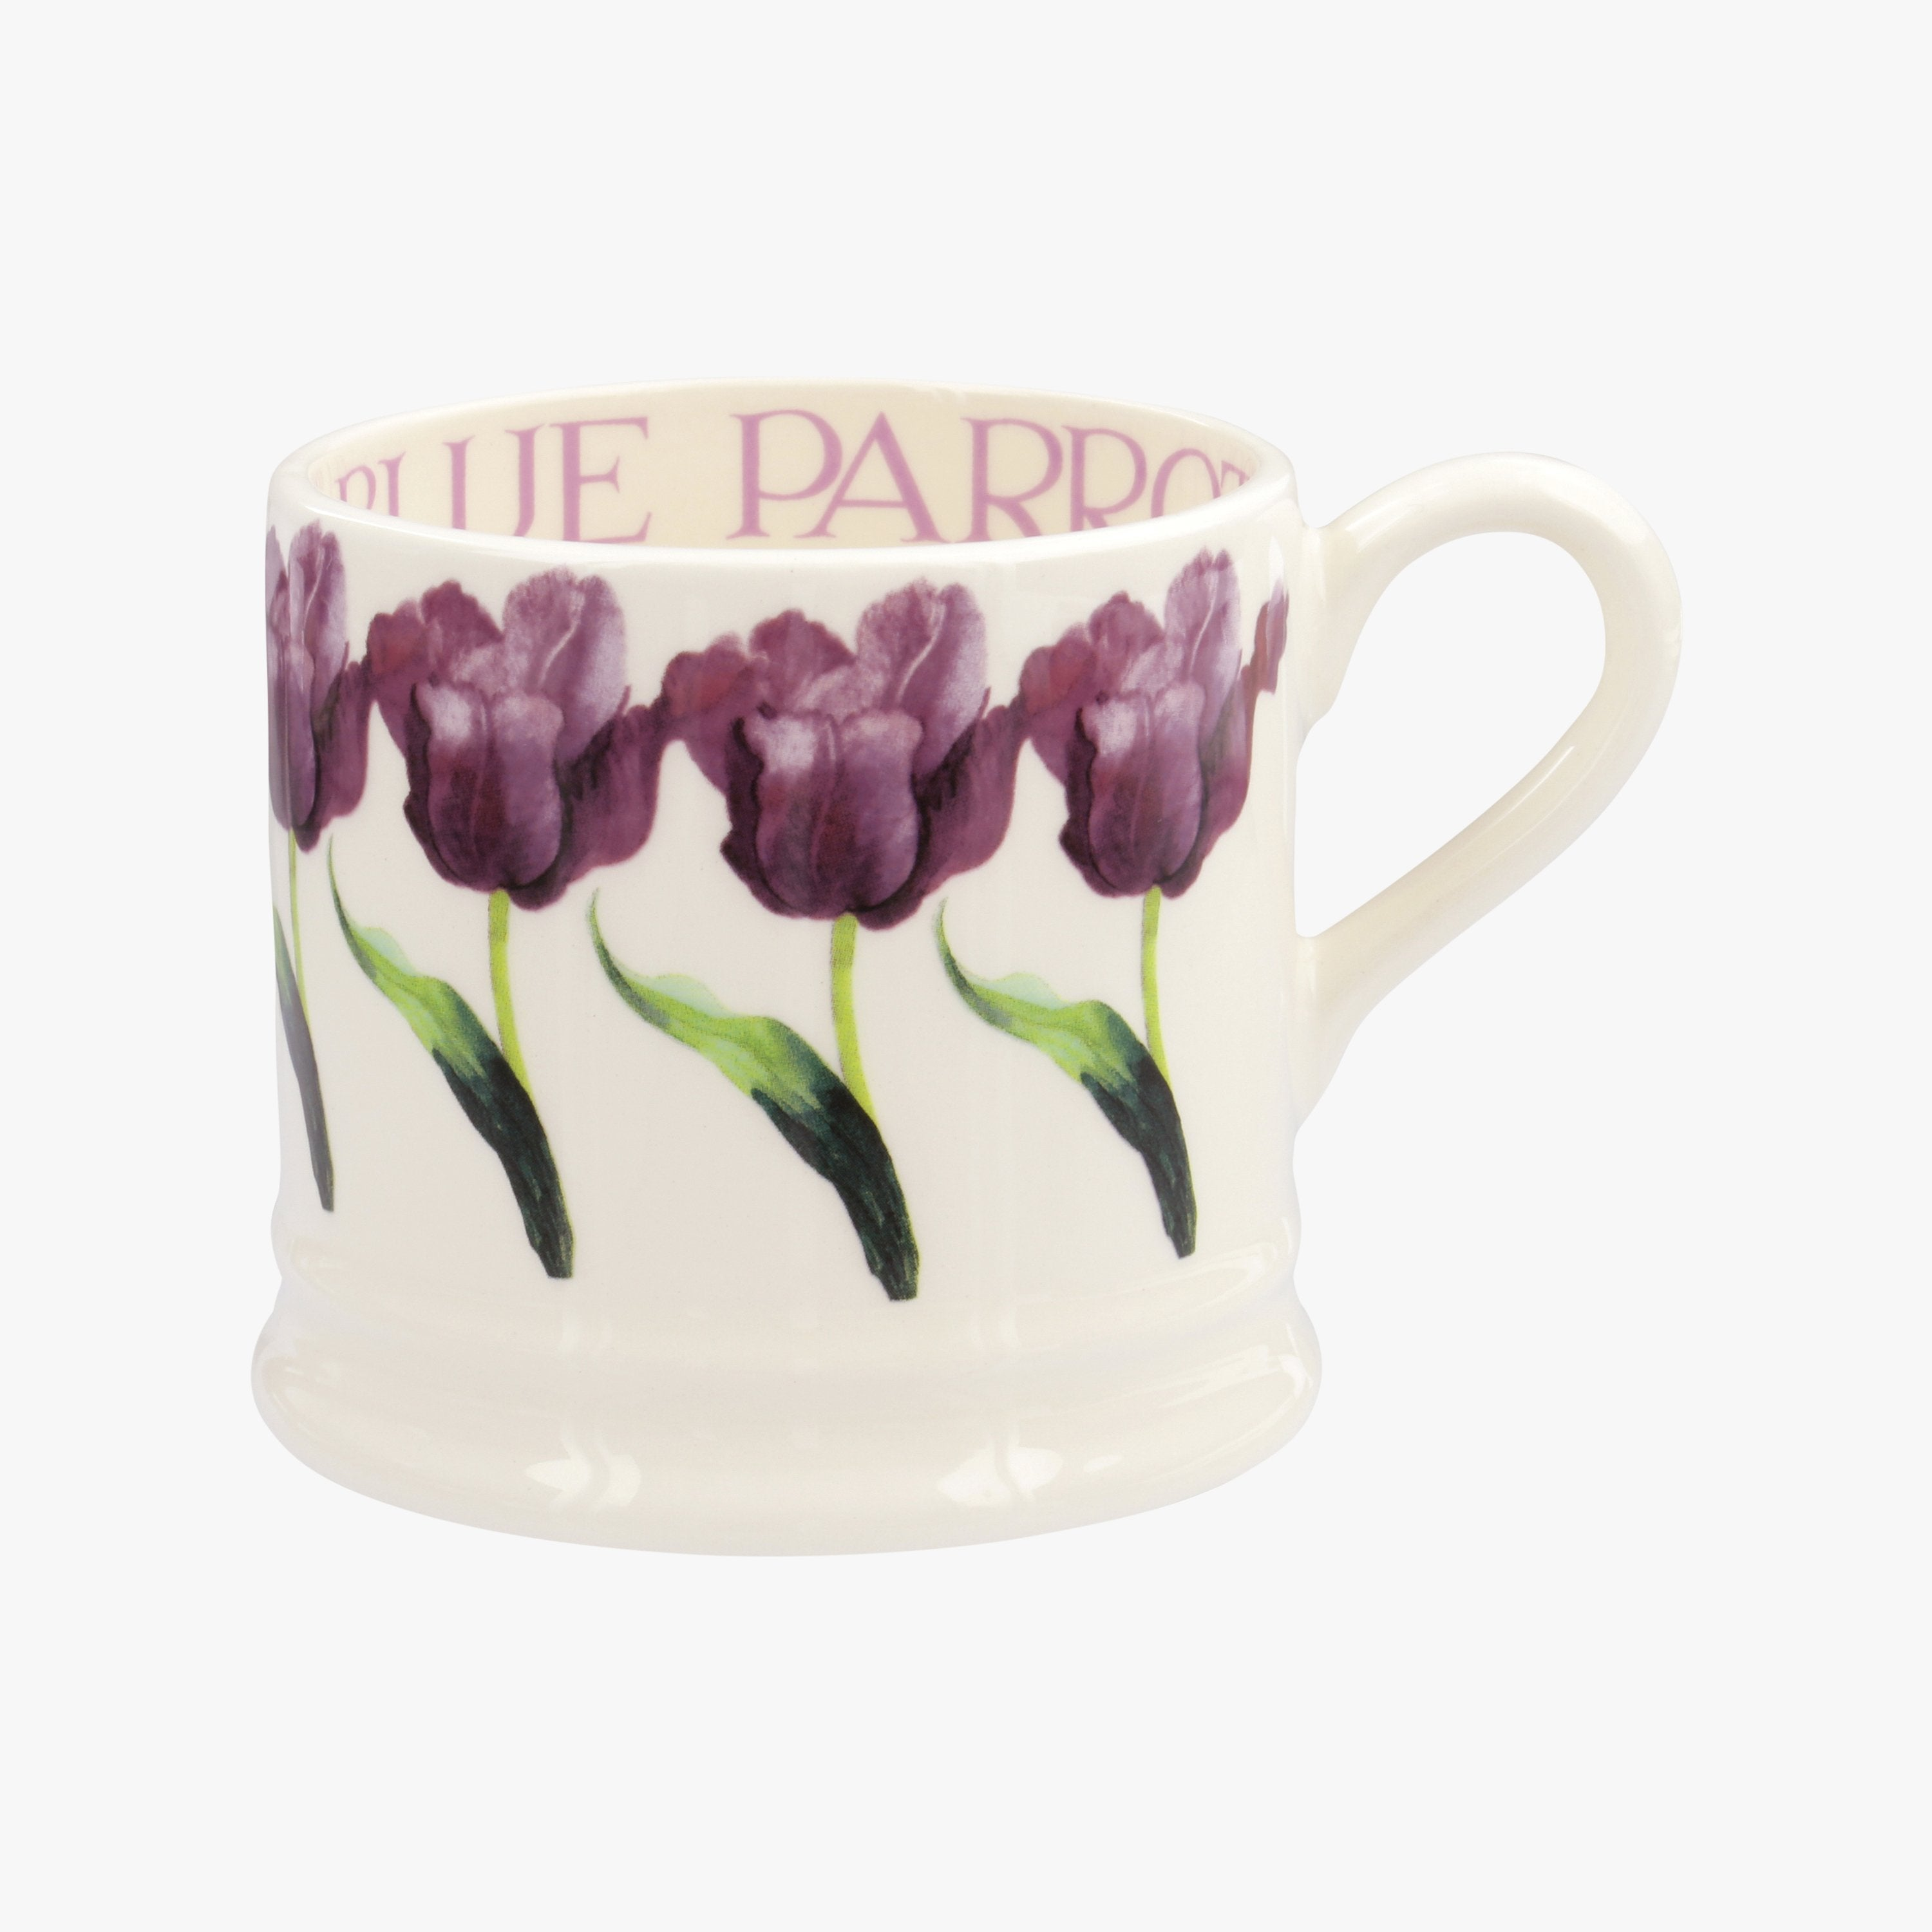 Image of Blue Parrot Tulip Small Mug